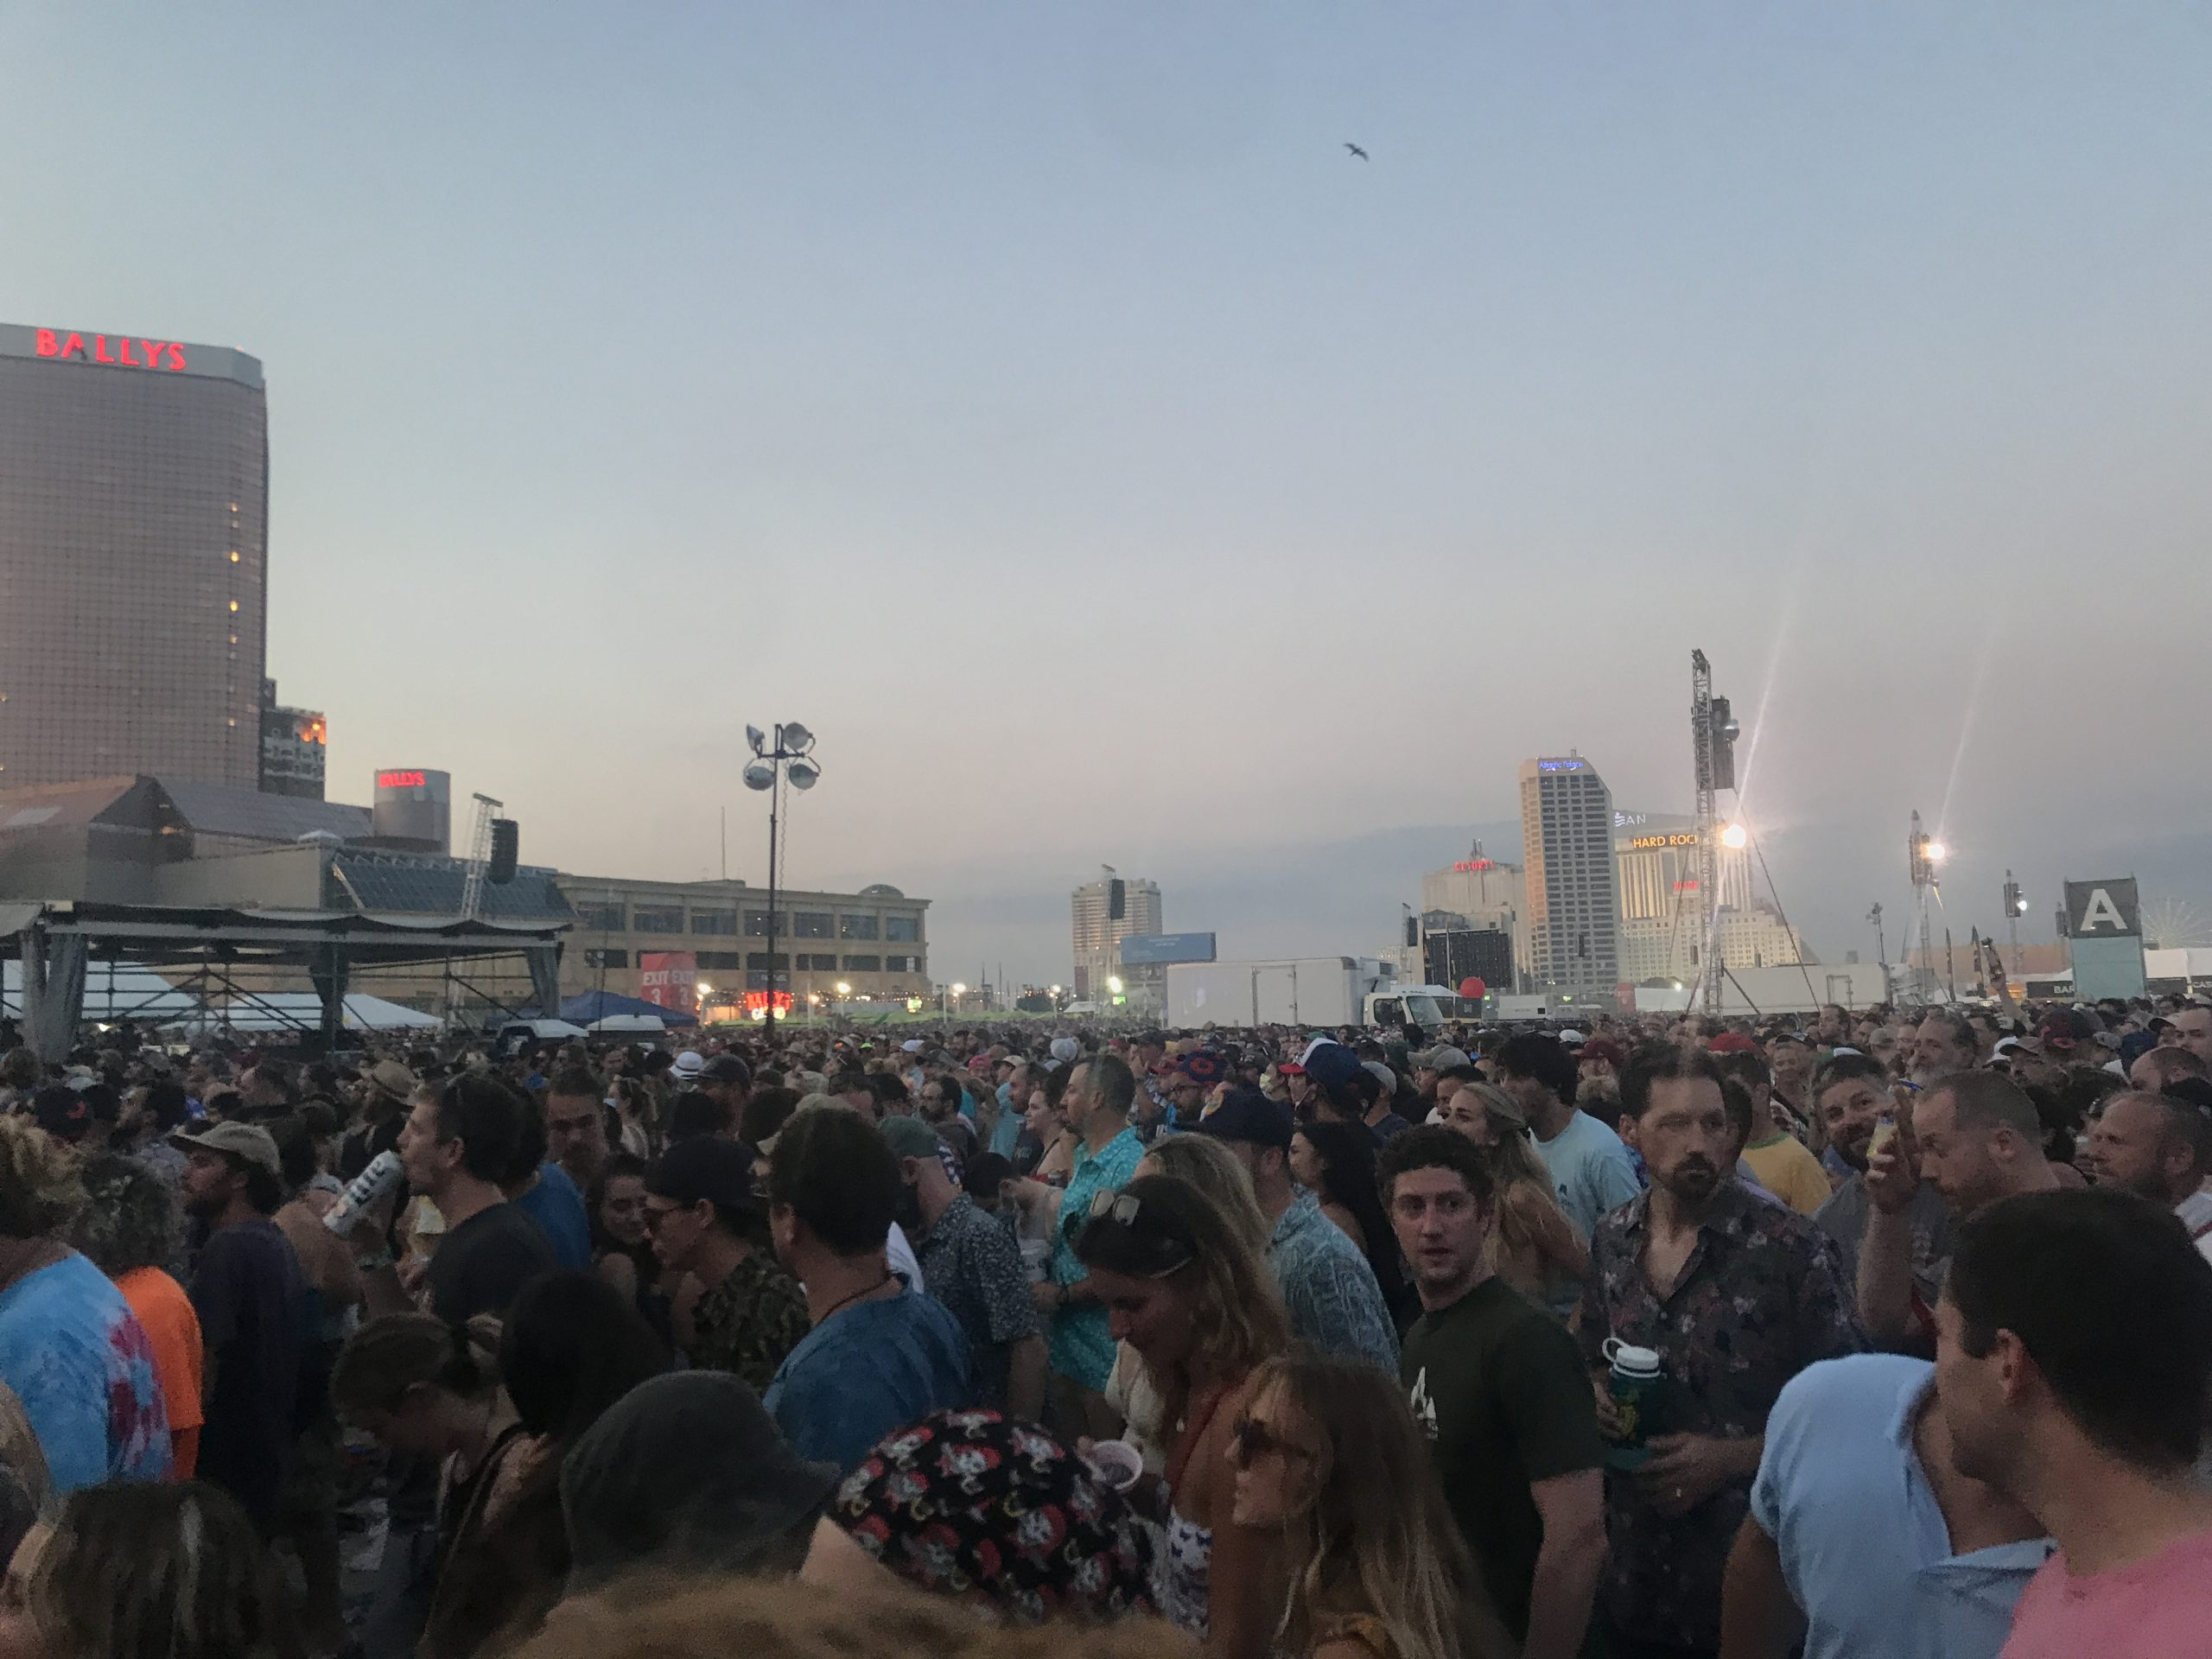 The crowd for Phish night two, Saturday, Aug. 14, 2021 on the beach in Atlantic City, New Jersey (Shaun R. Smith/ The High Note).